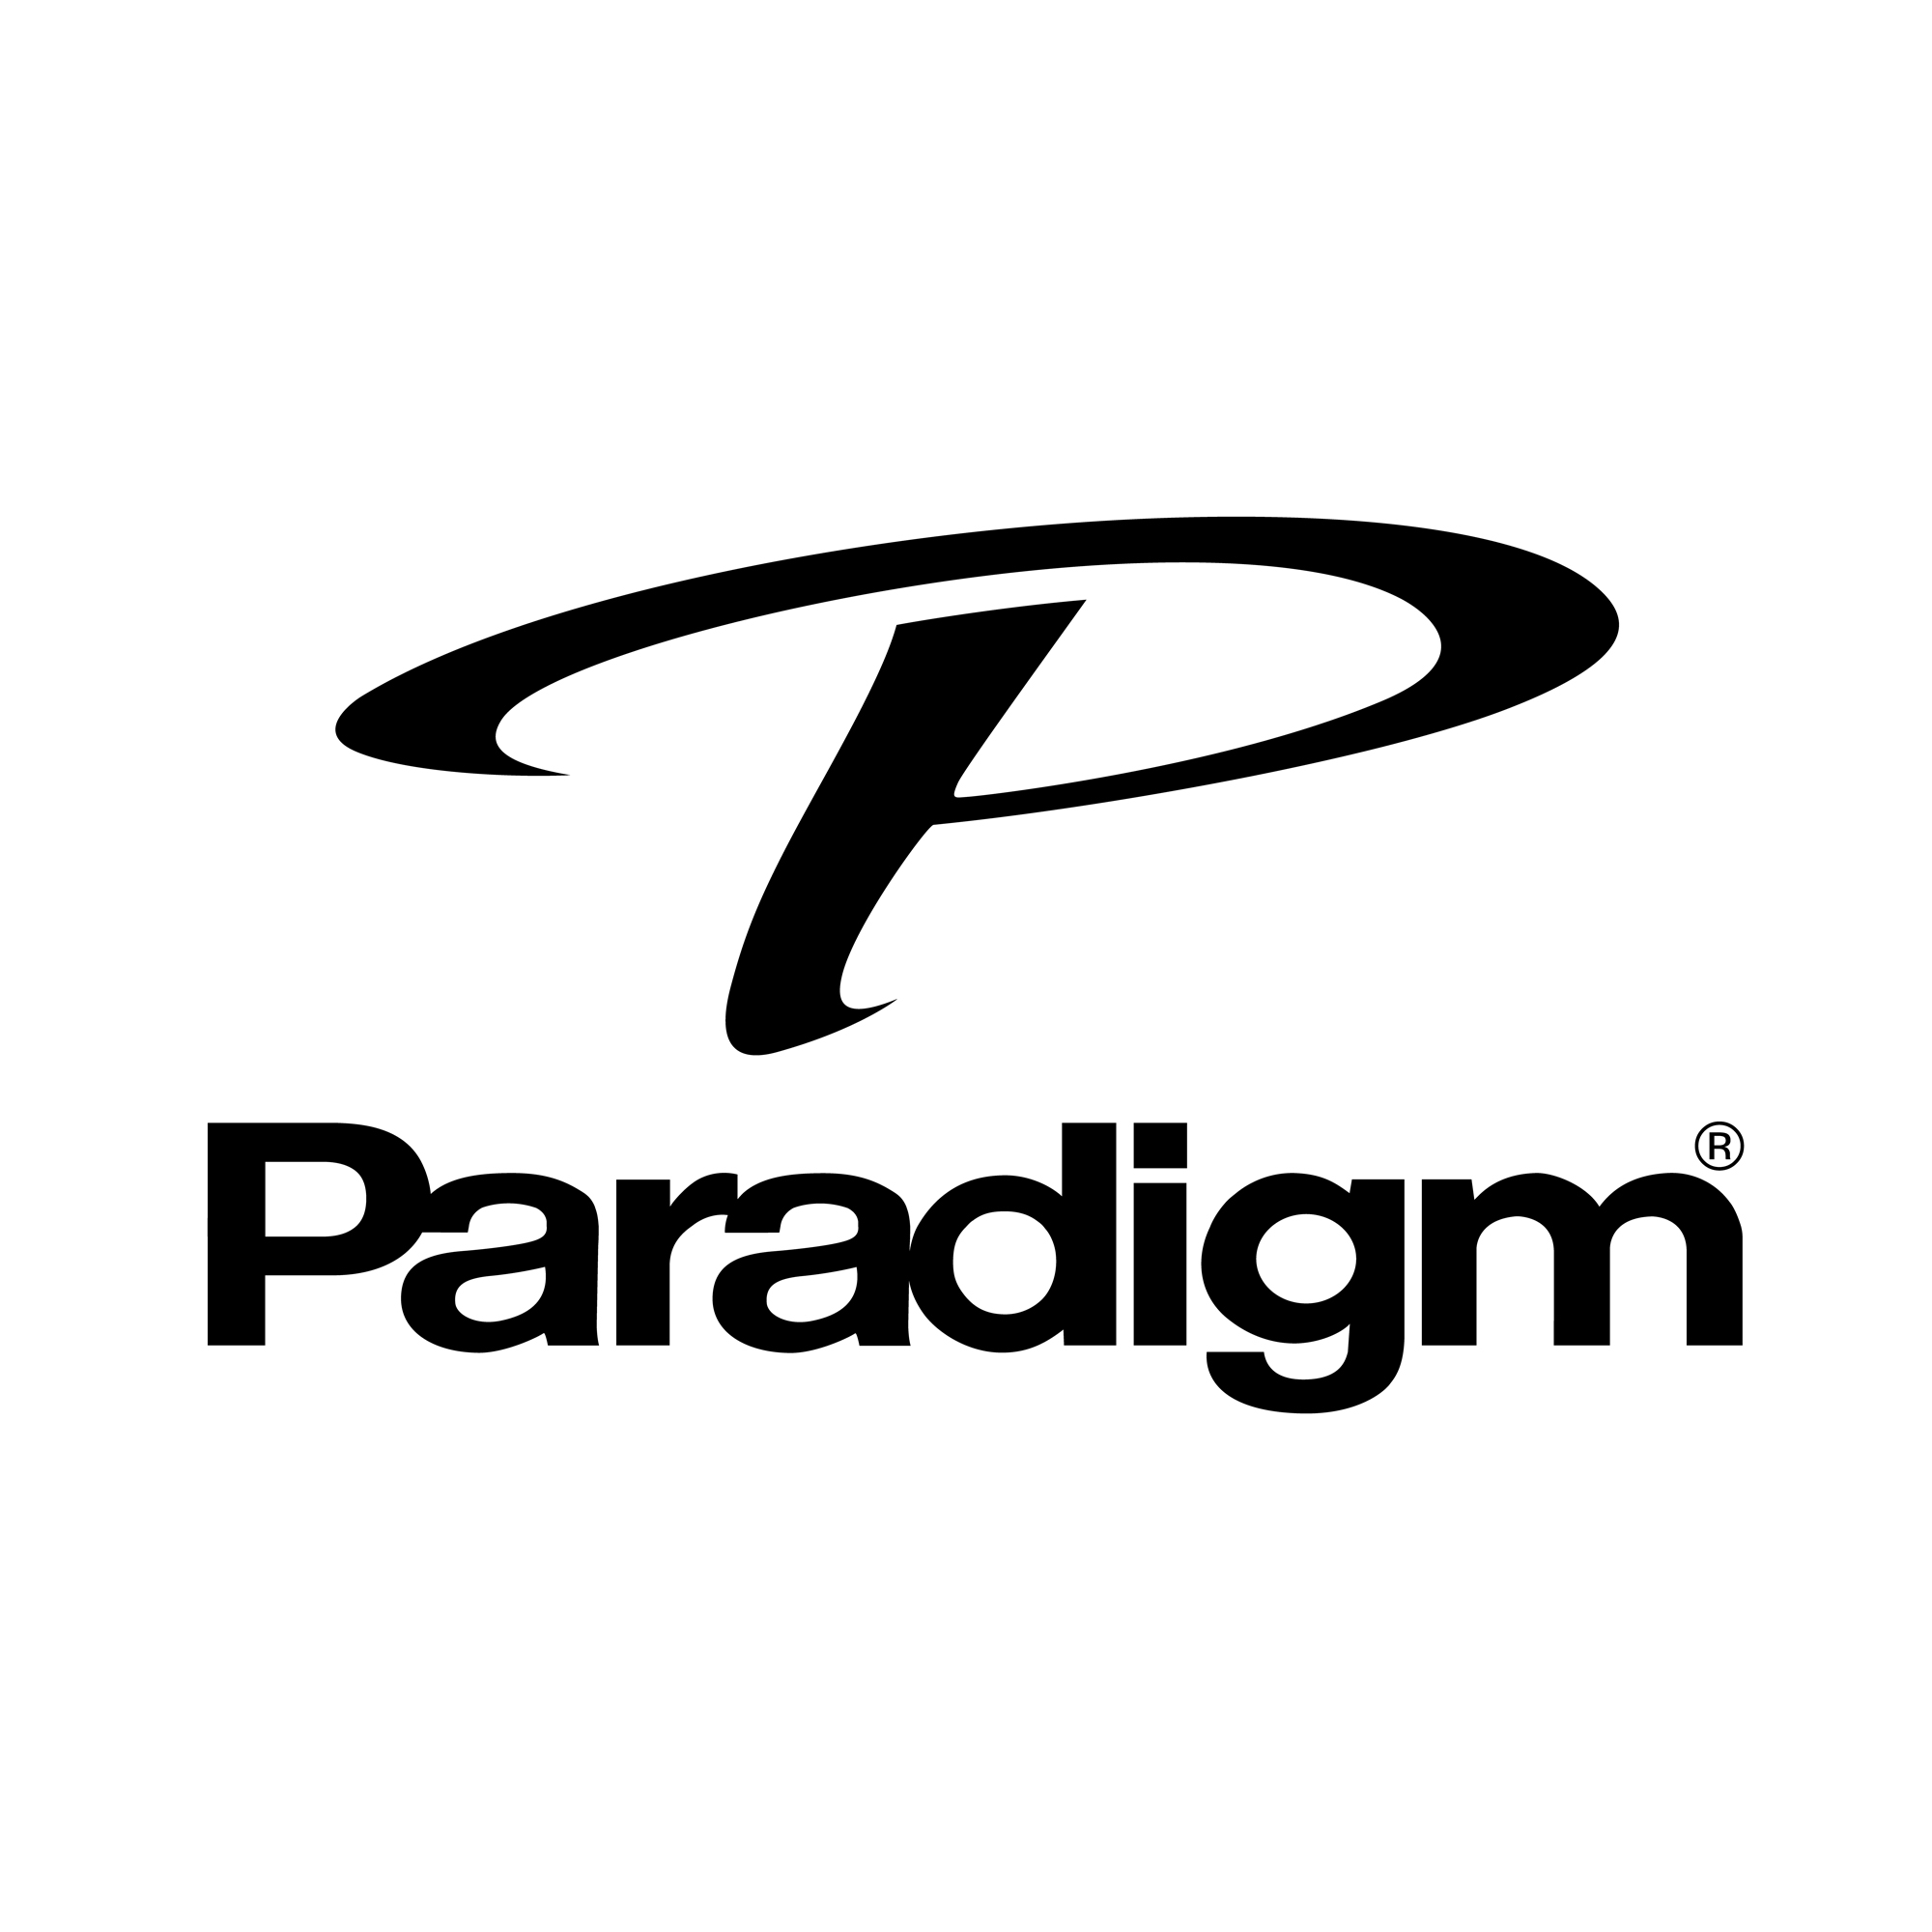 https://evolutionav.com/wp-content/uploads/2018/04/paradigm-logo-in-black_15541627290_oedited-1.jpg